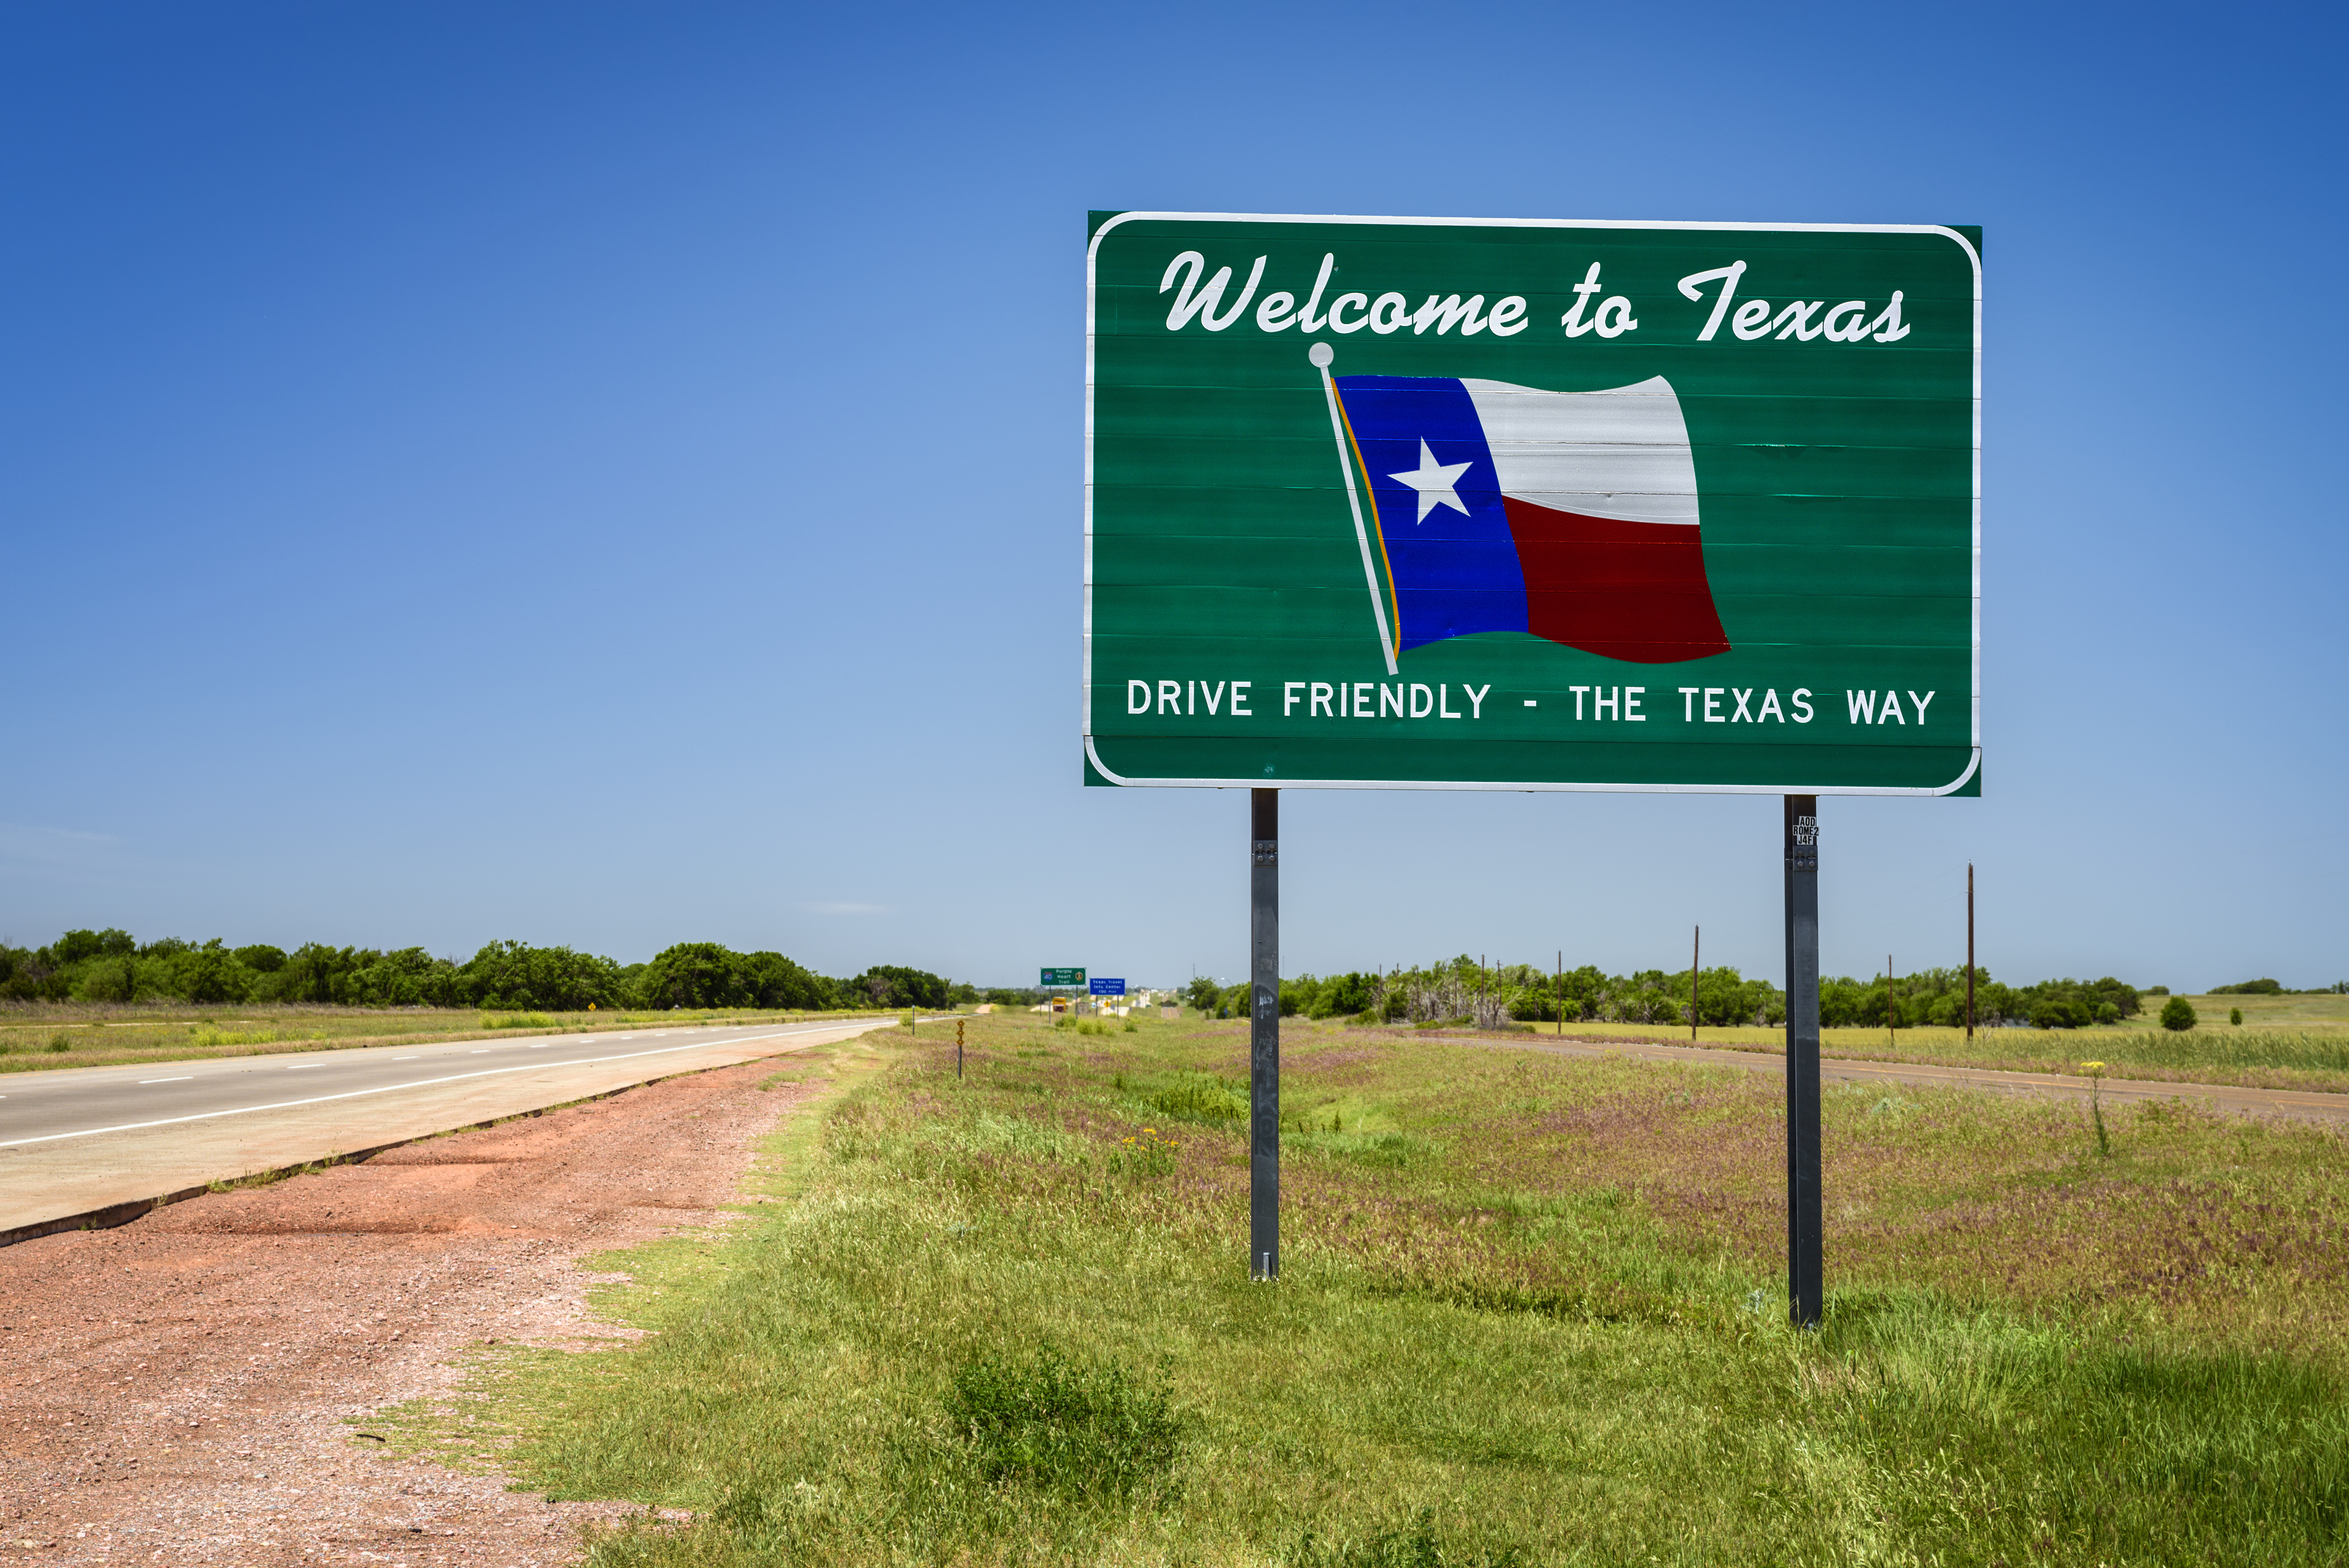 Doing Business In The U.S.: How To Form A Company In Texas